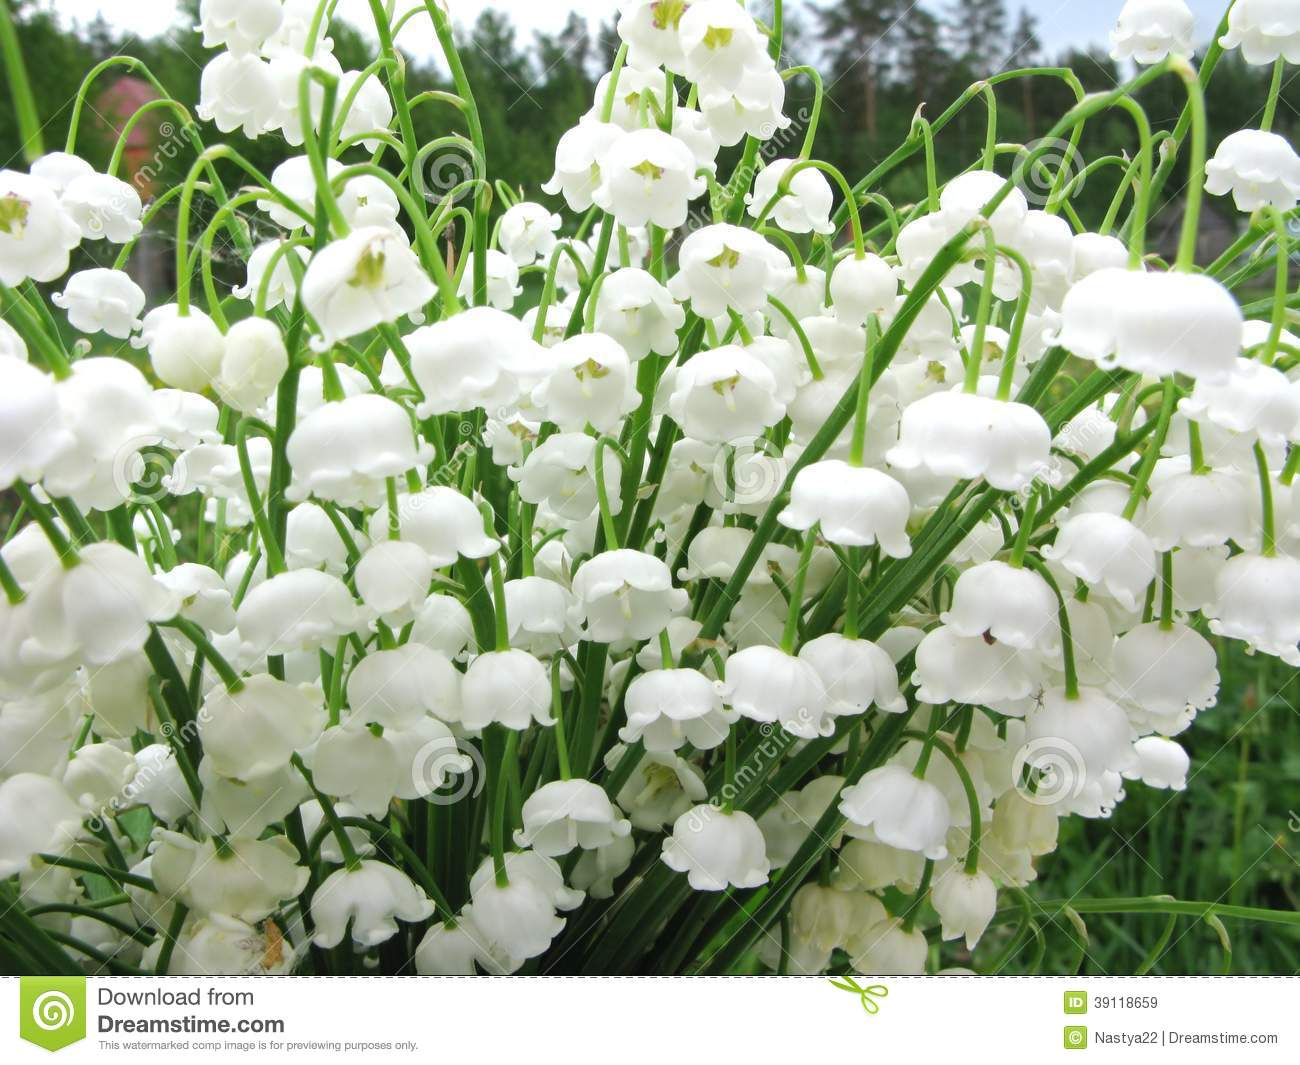 Le Meilleur Bouquet Of Lily Of The Valley Flowers Stock Photo Image Ce Mois Ci